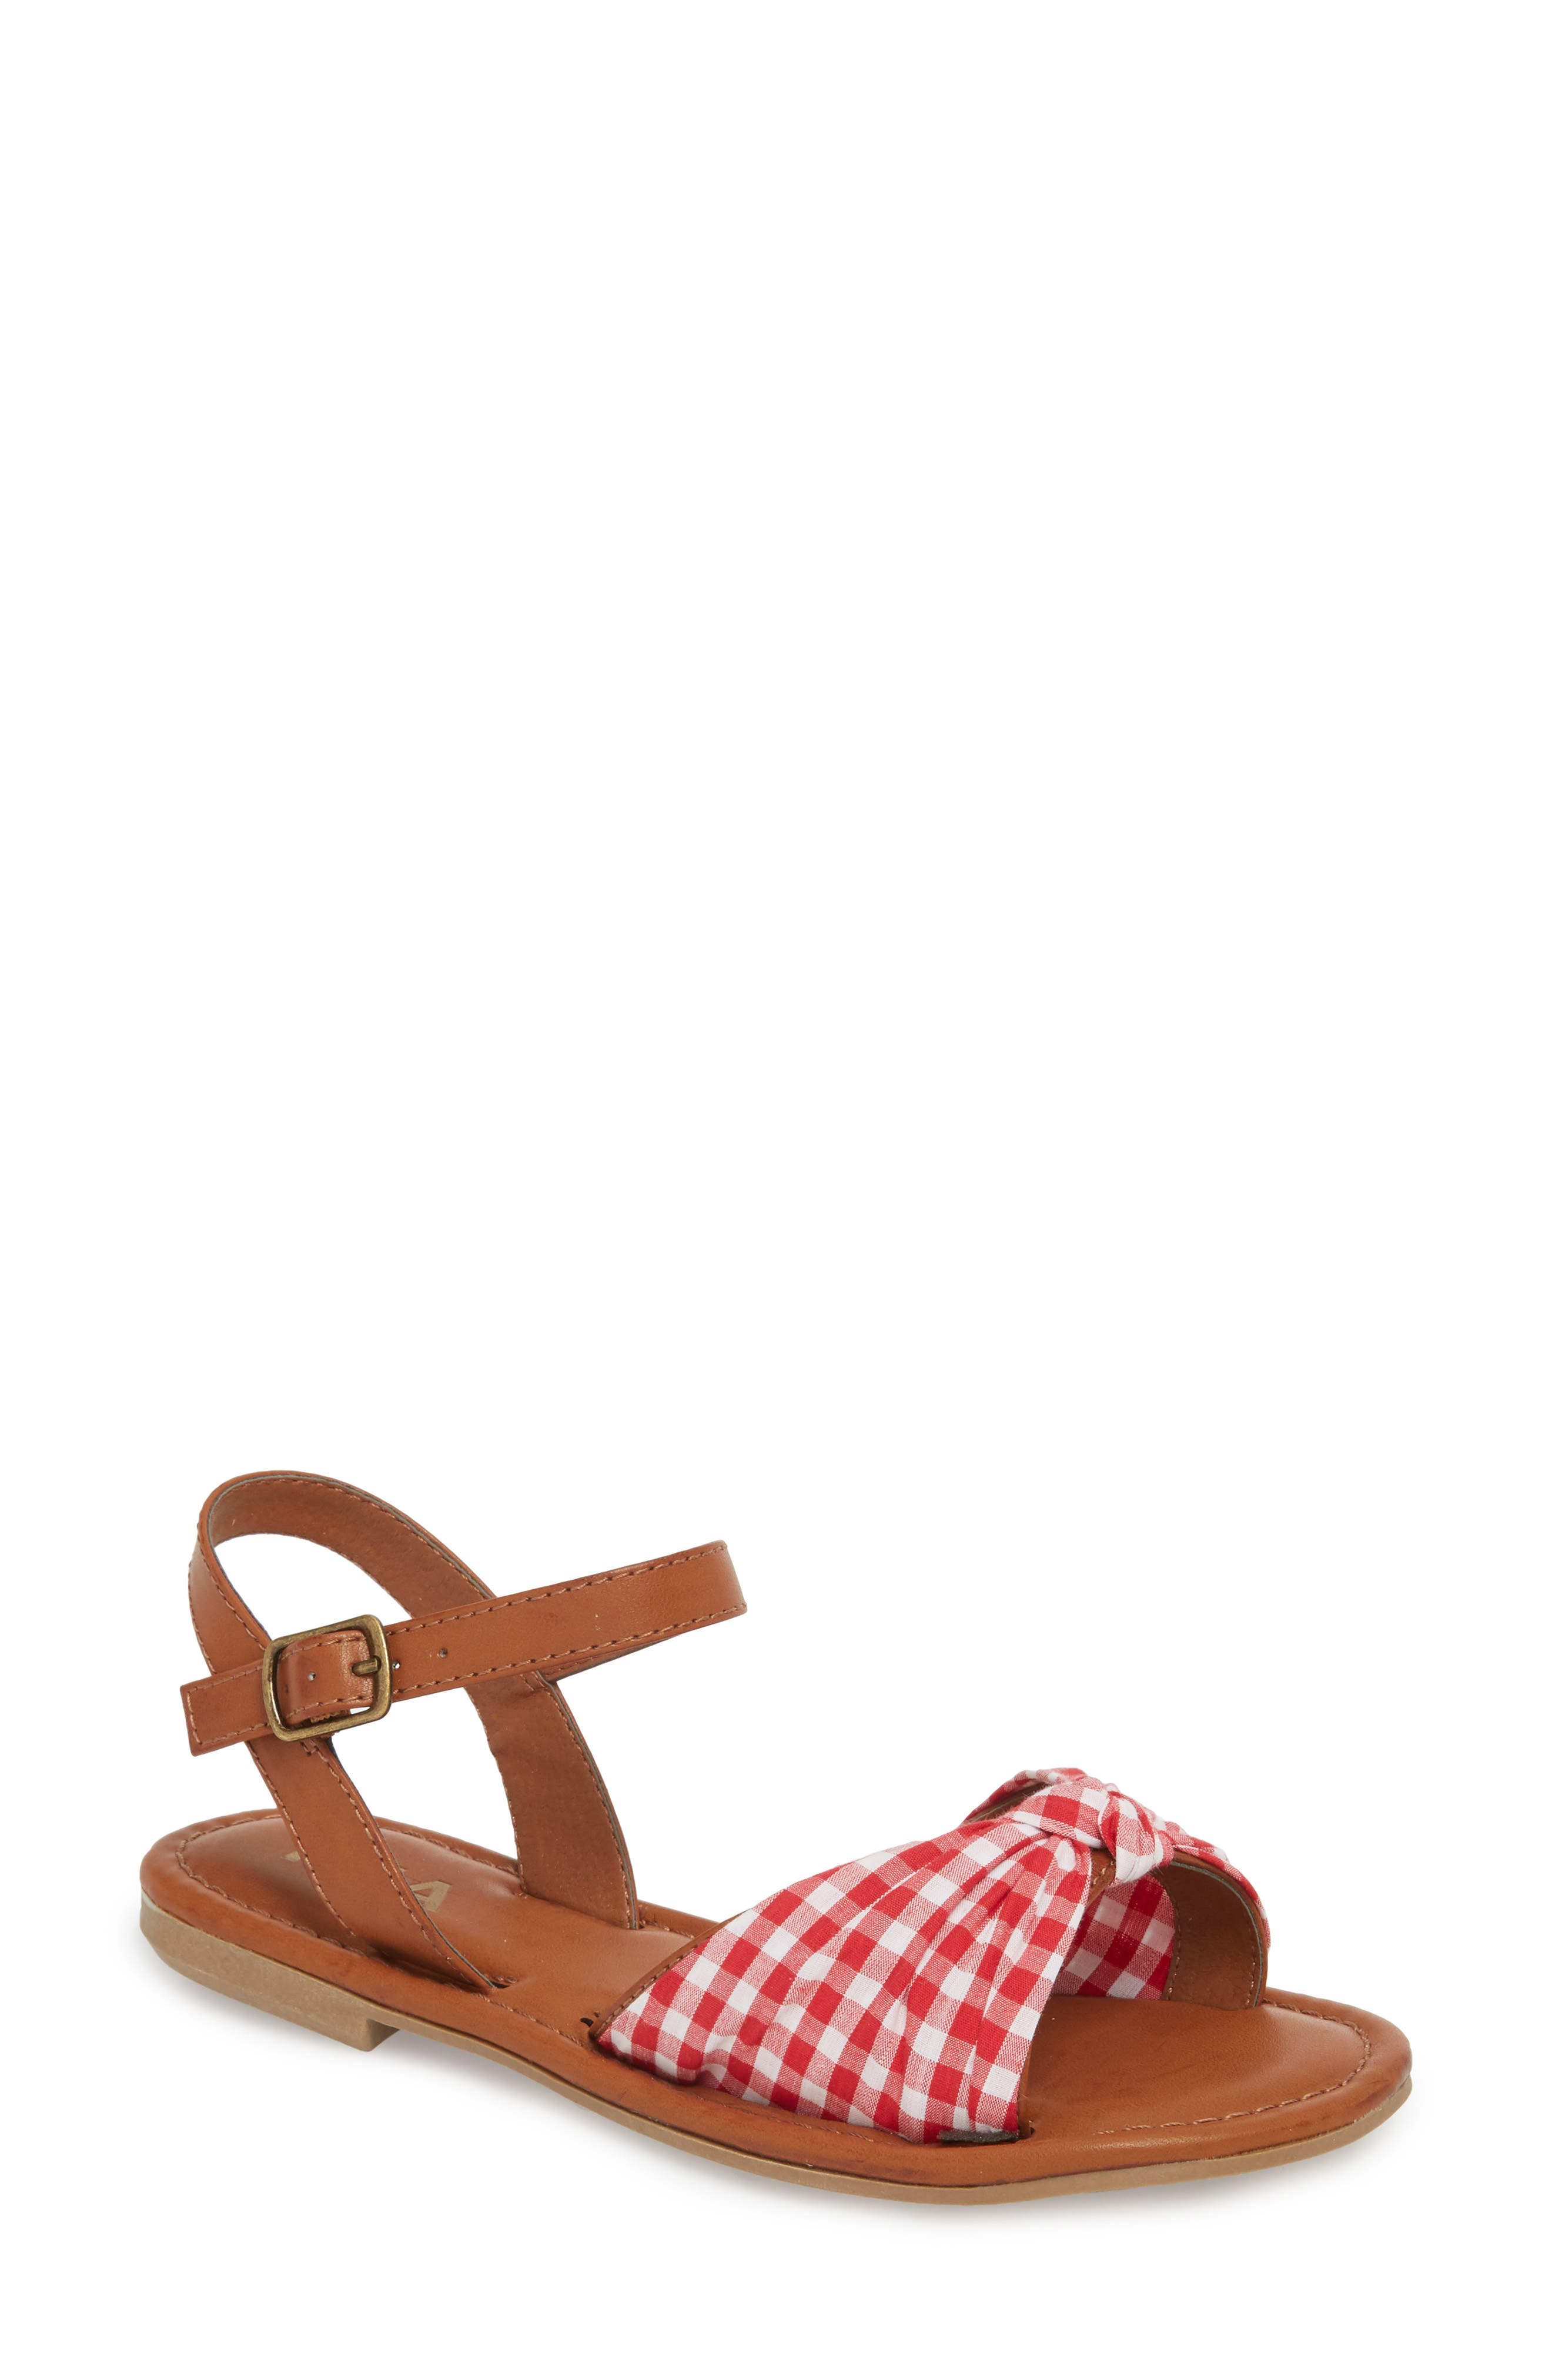 Neala Bow Sandal,                         Main,                         color, Red/ White Fabric